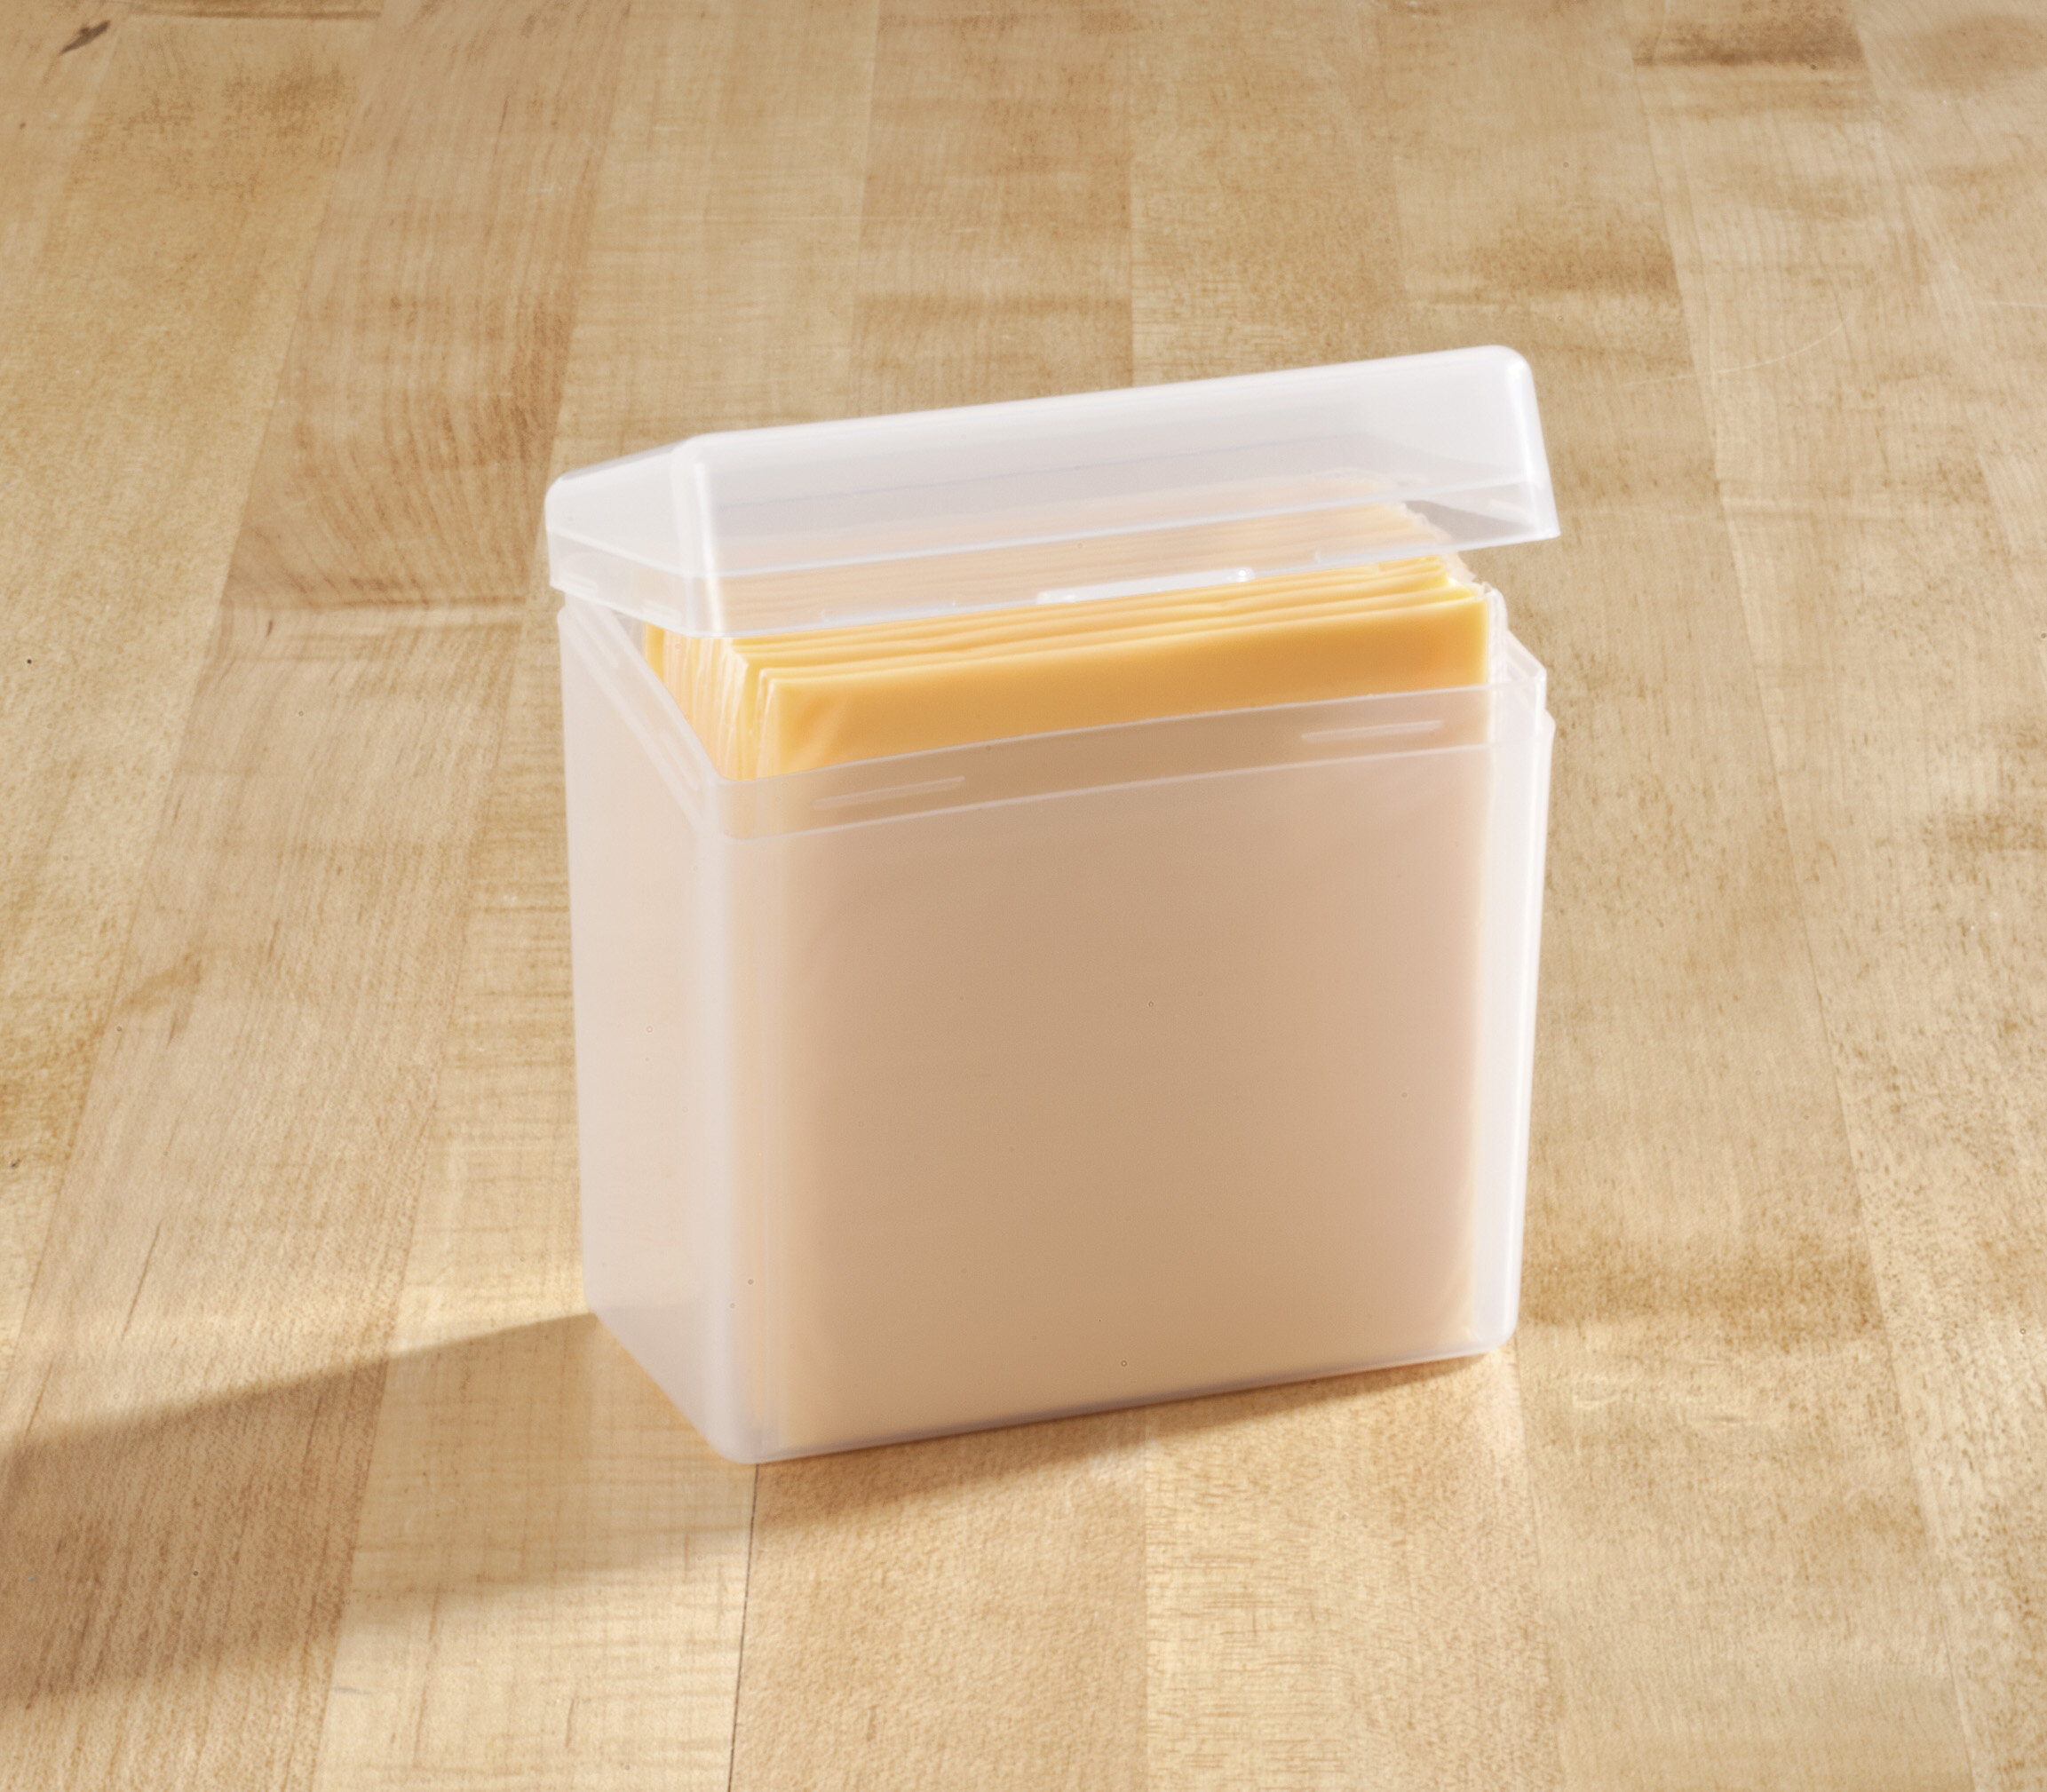 Miles Kimball Cheese 2 Container Food Storage Set Wayfair